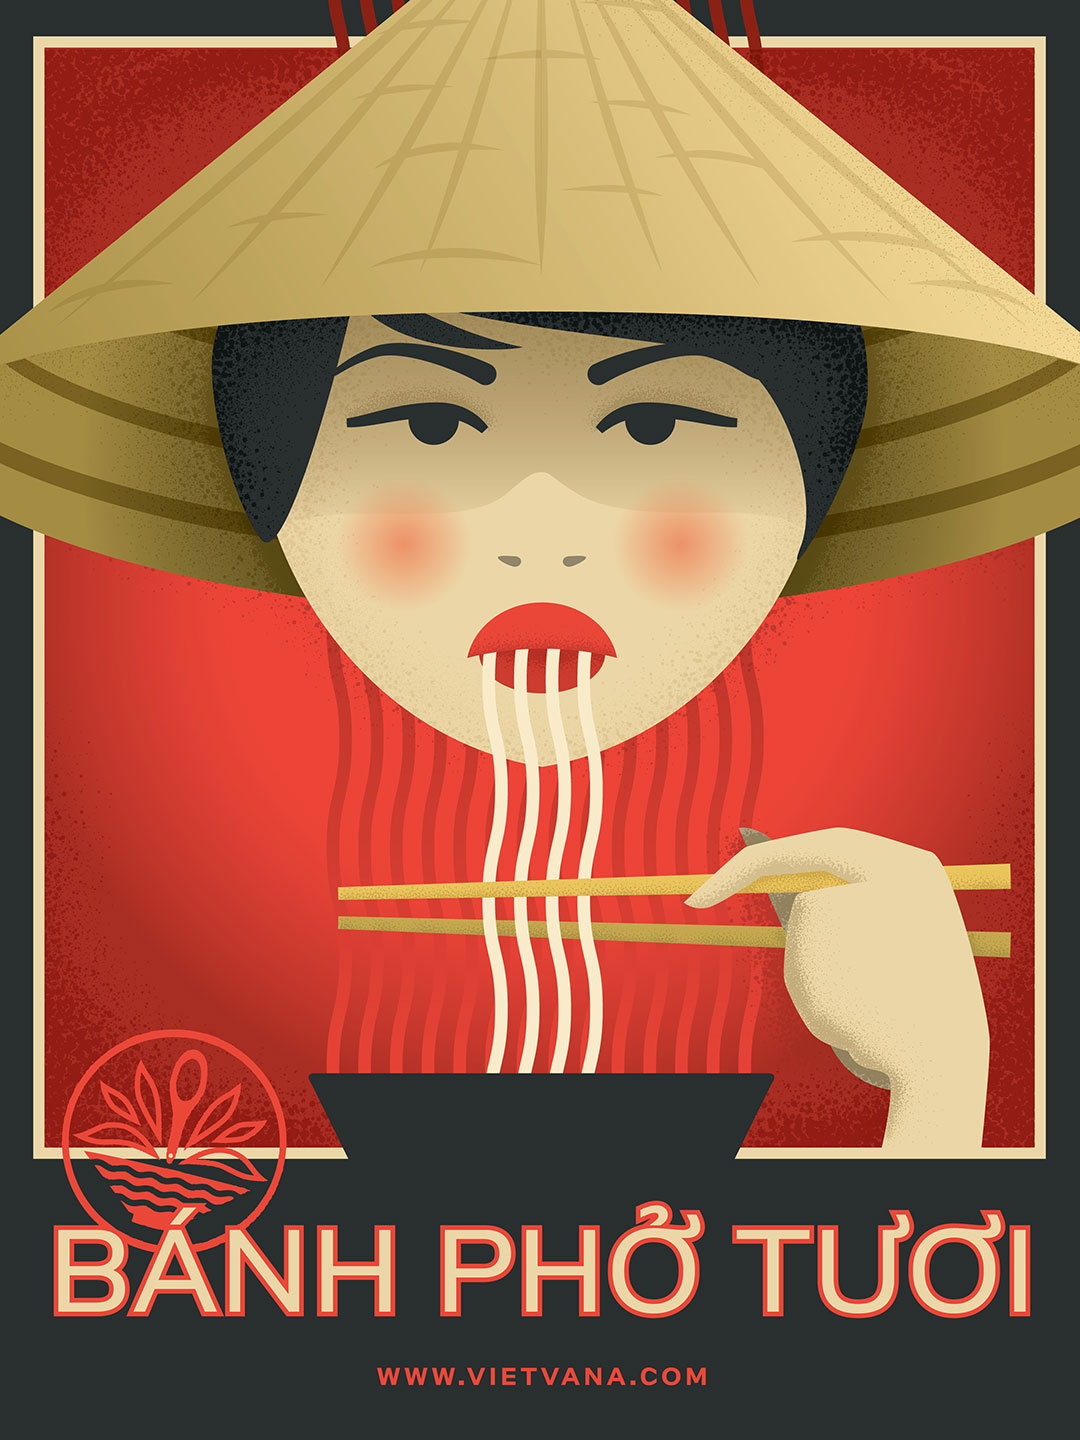 Vietvana french style illustration of pho noodles